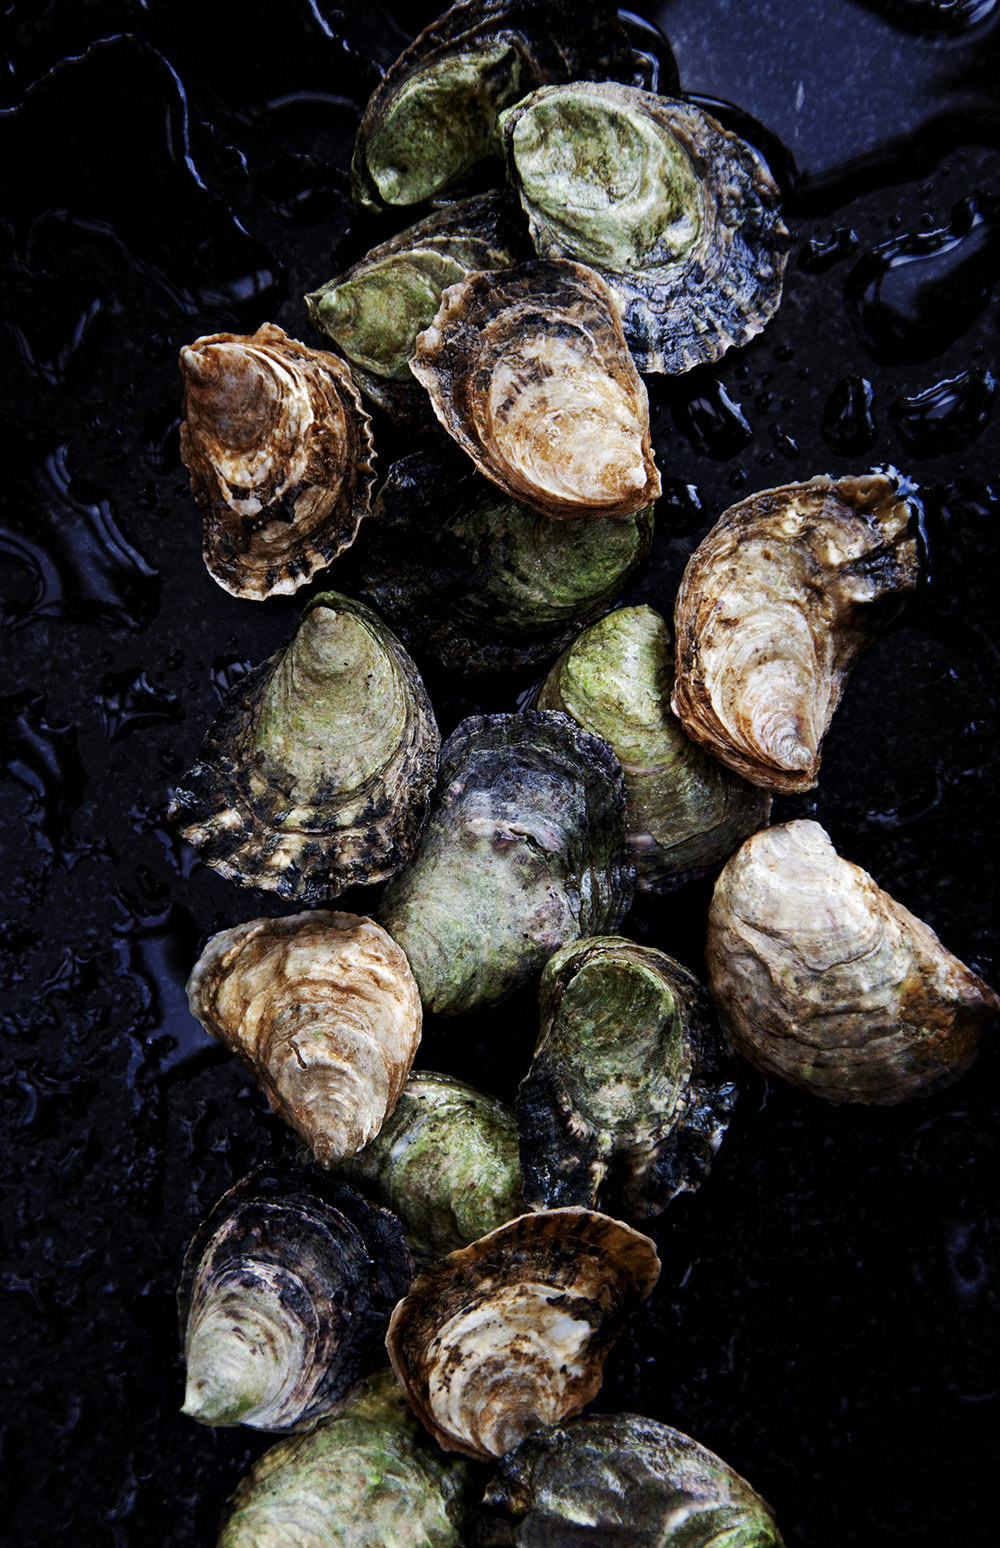 Burggraaf_Charity-Seattle_Food_Photographer-Olympia_Oysters-fresh.jpg